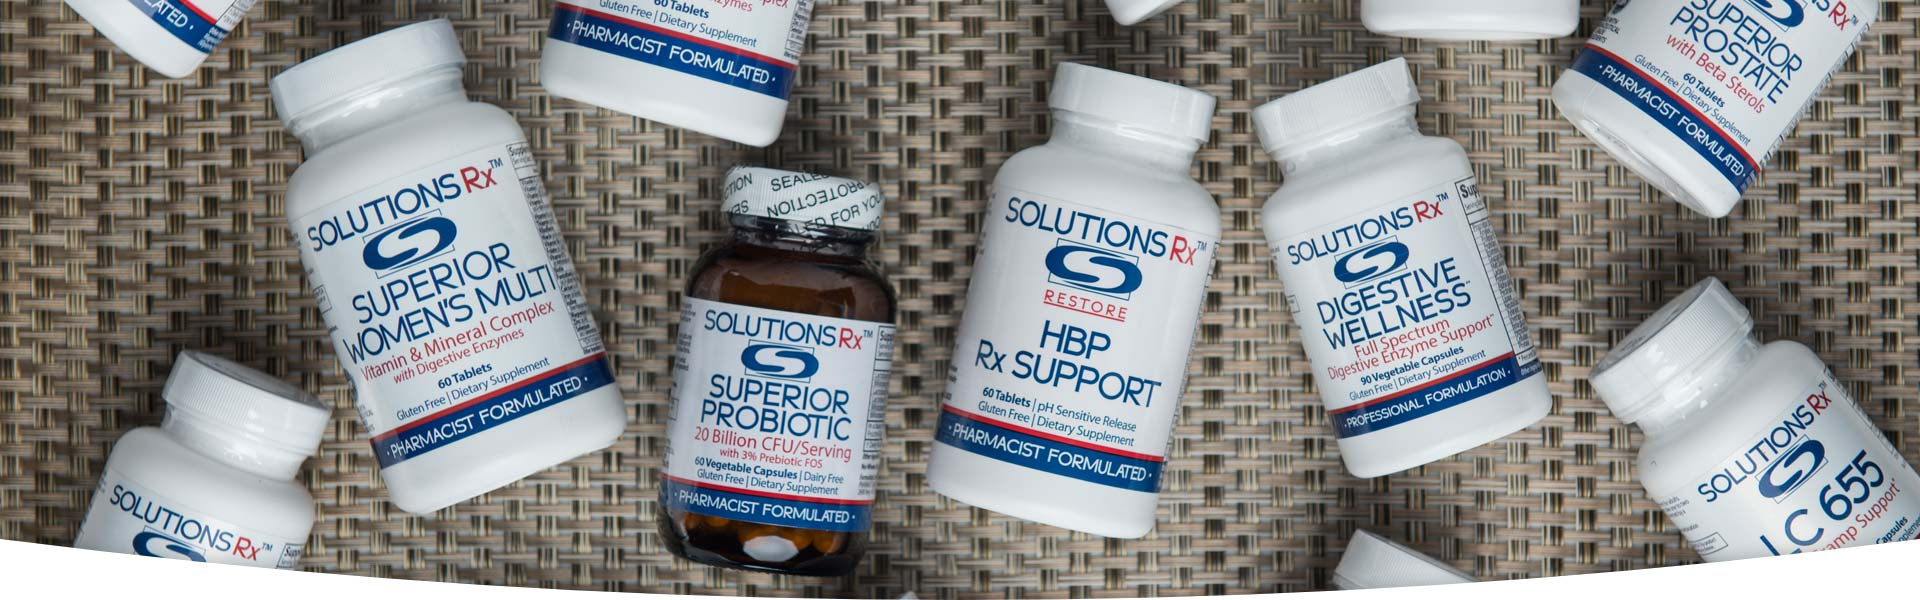 rx supplements